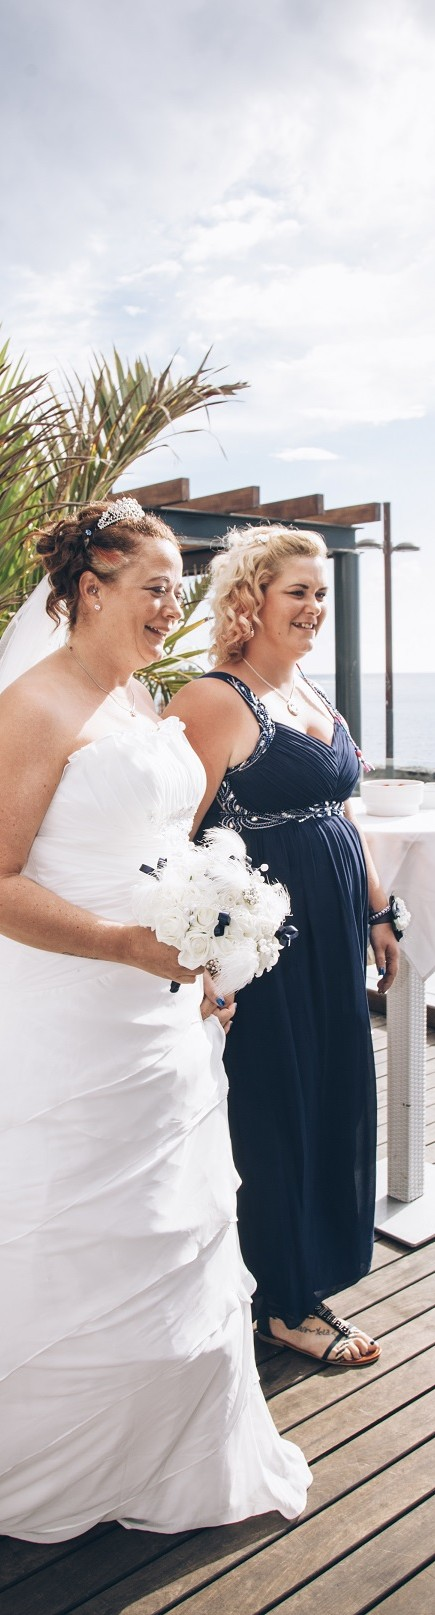 Wedding-Rachel-and-Paul-in-tenerife-myperfectwedding0062